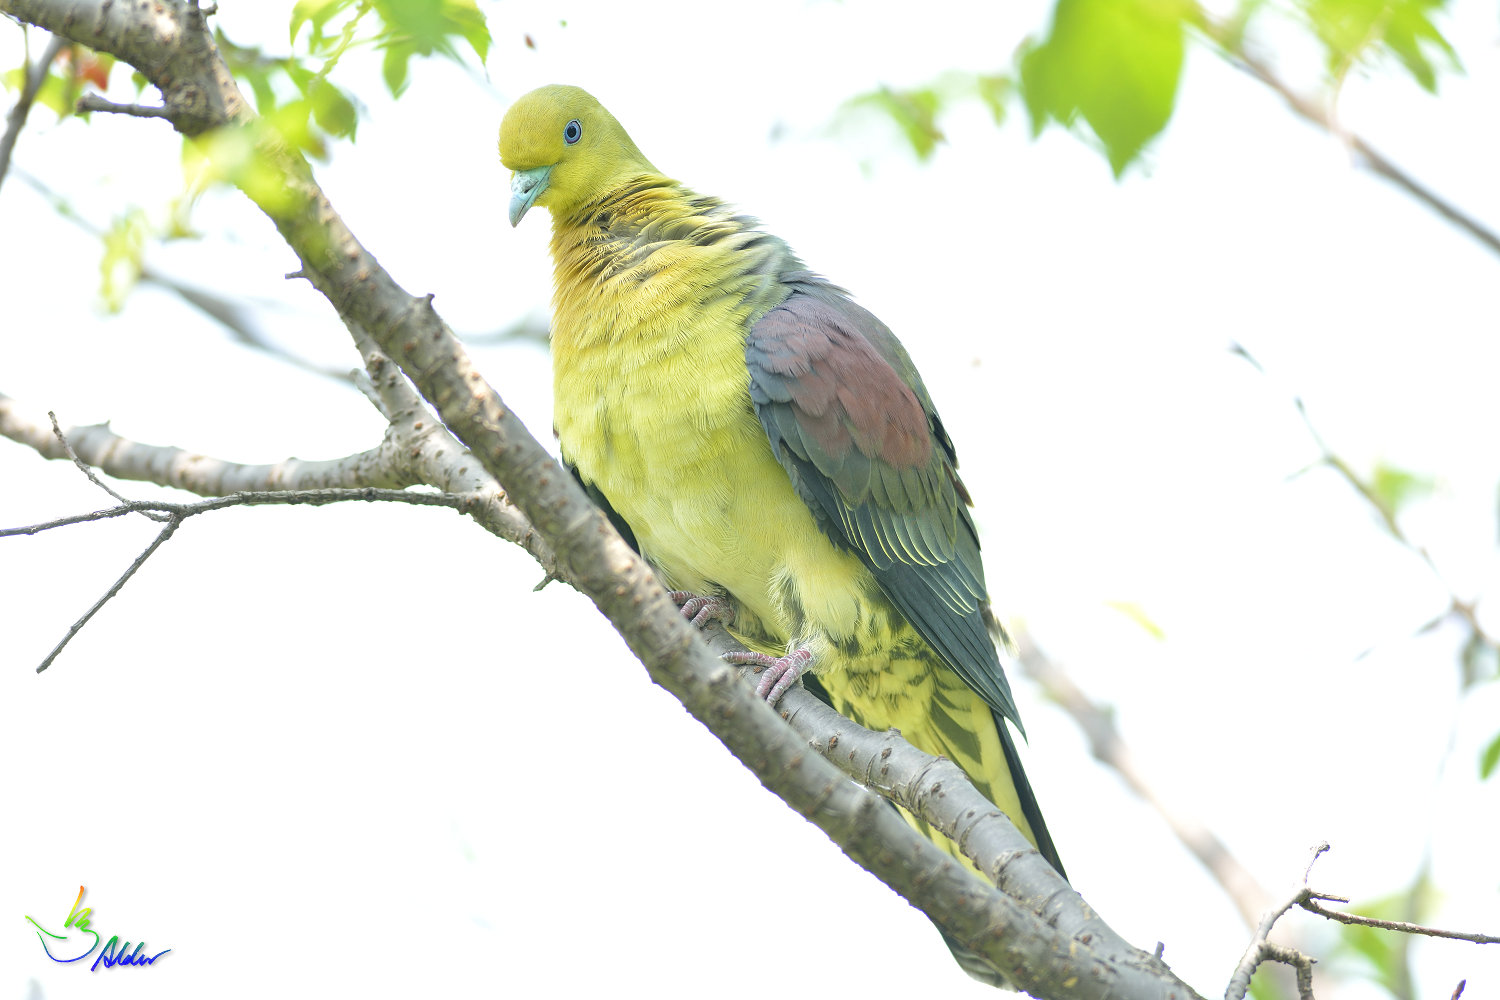 White-bellied_Green_Pigeon_5881